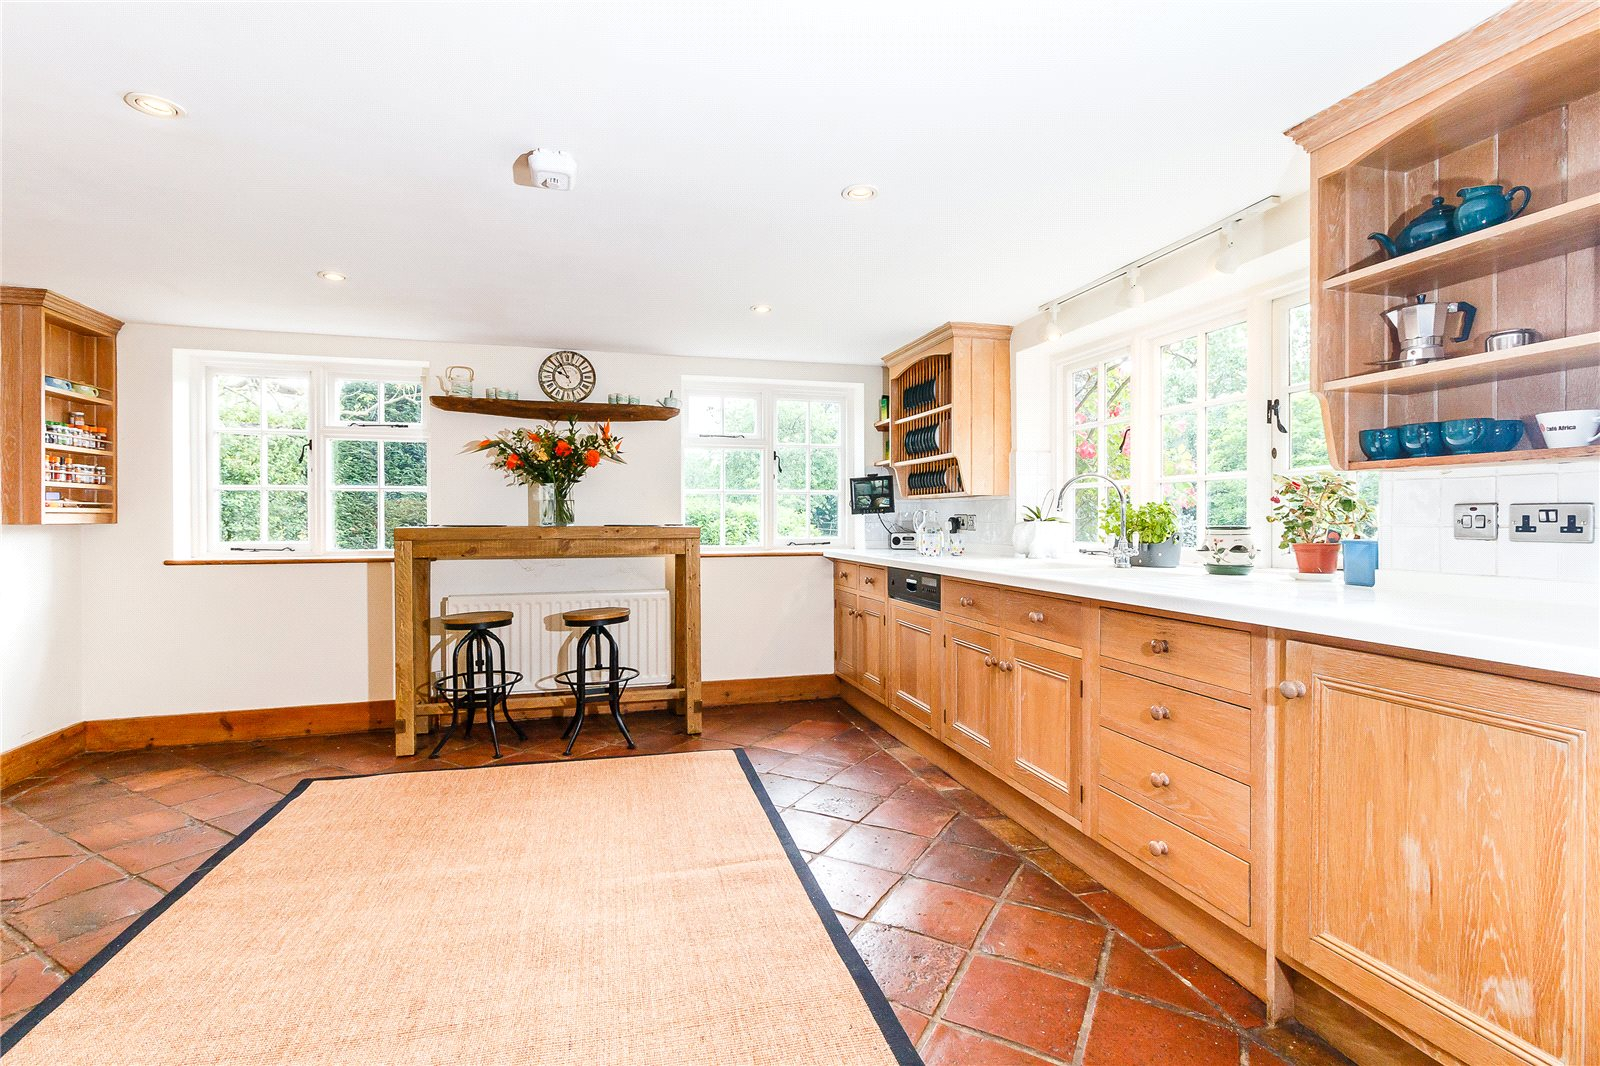 Additional photo for property listing at Newbarn Lane, Seer Green, Beaconsfield, Buckinghamshire, HP9 Beaconsfield, England